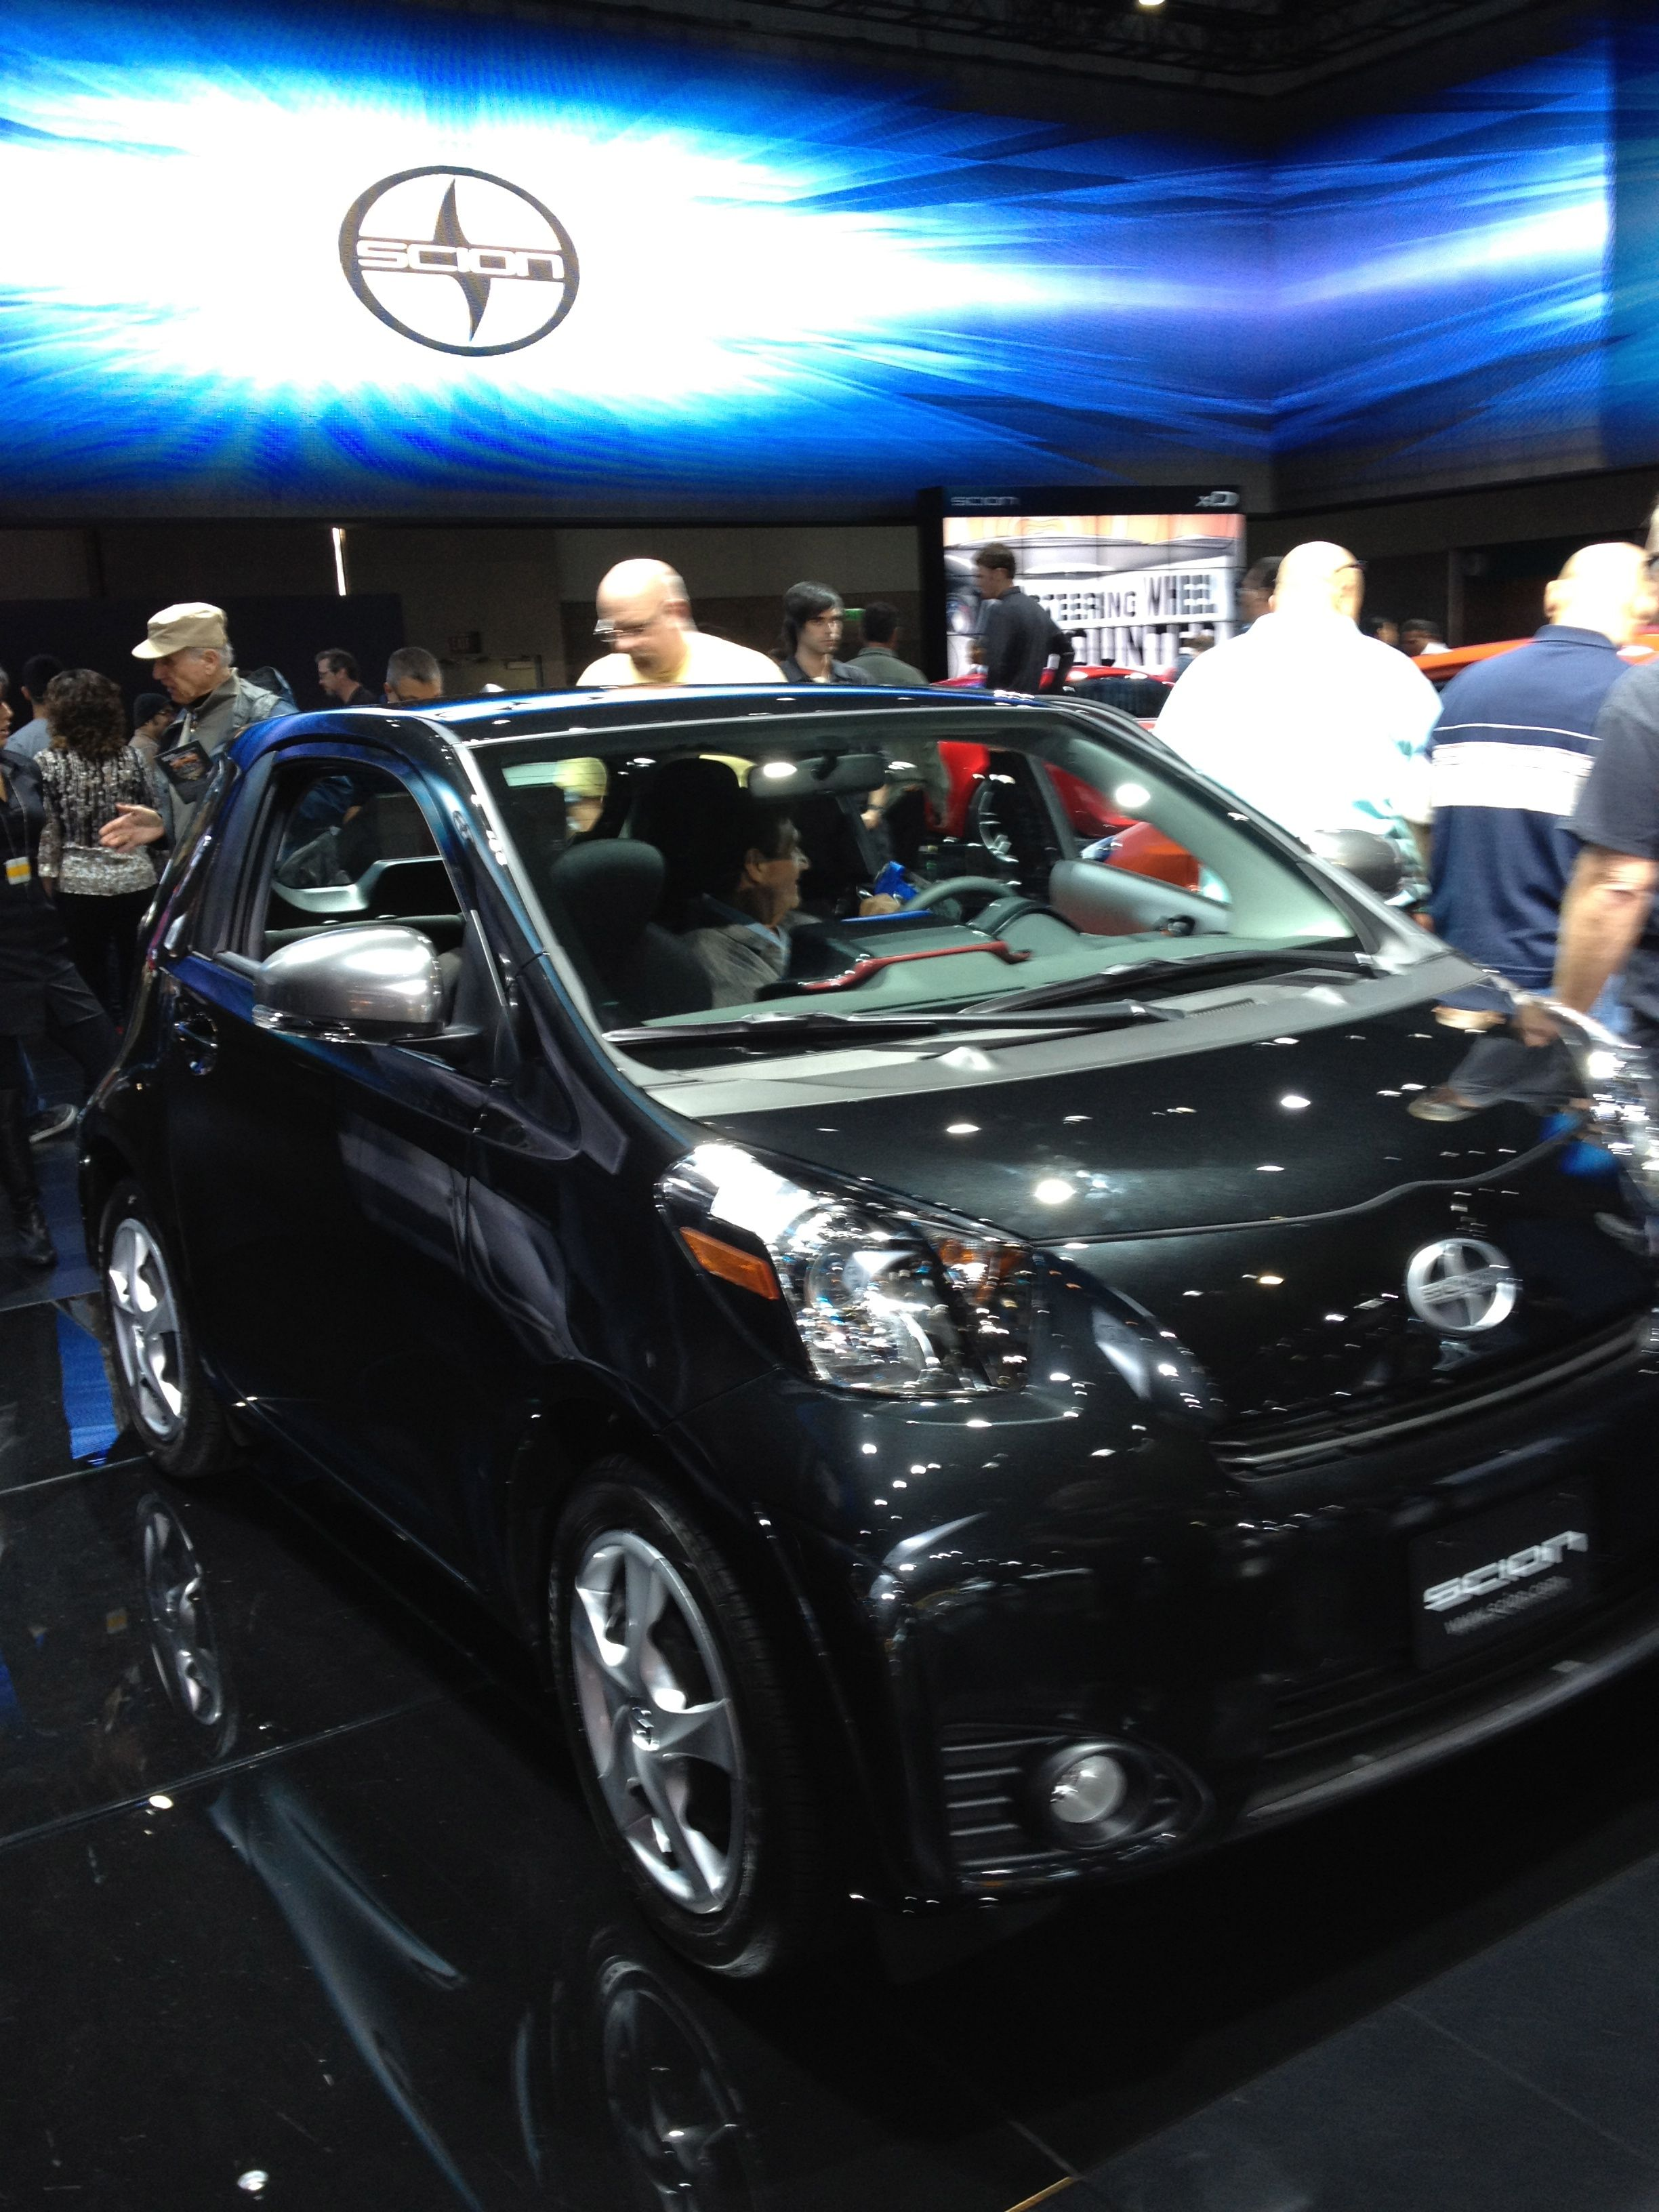 Scion IQ Bmw electric car, La auto show, Love car